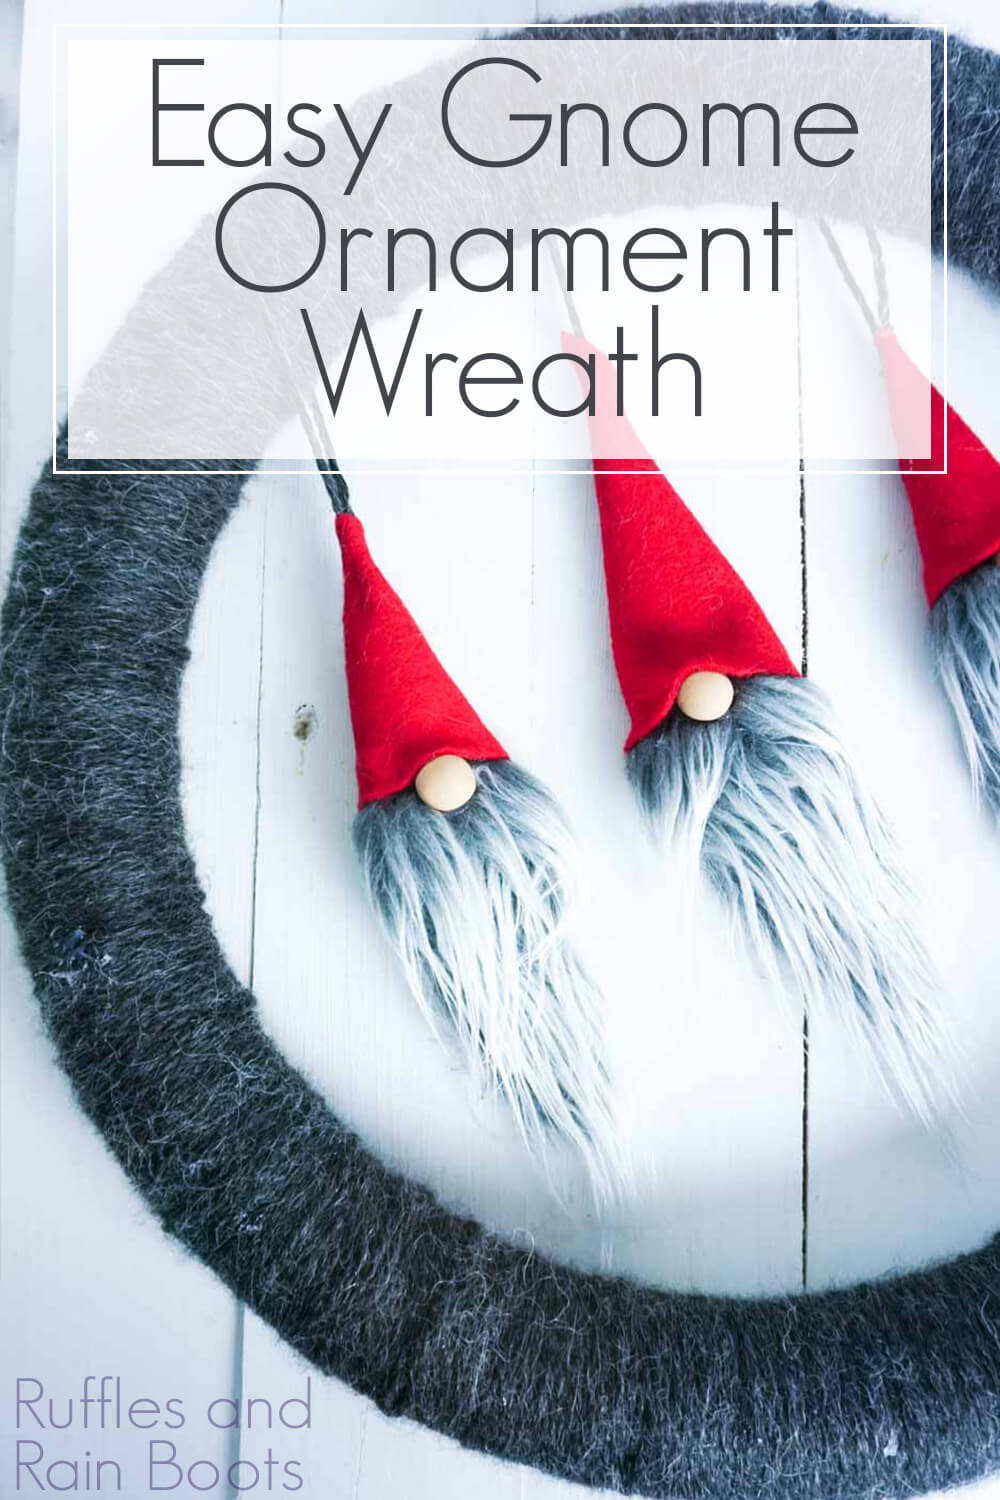 gnome christmas wreath on a white background with text which reads Easy Gnome Ornament Wreath